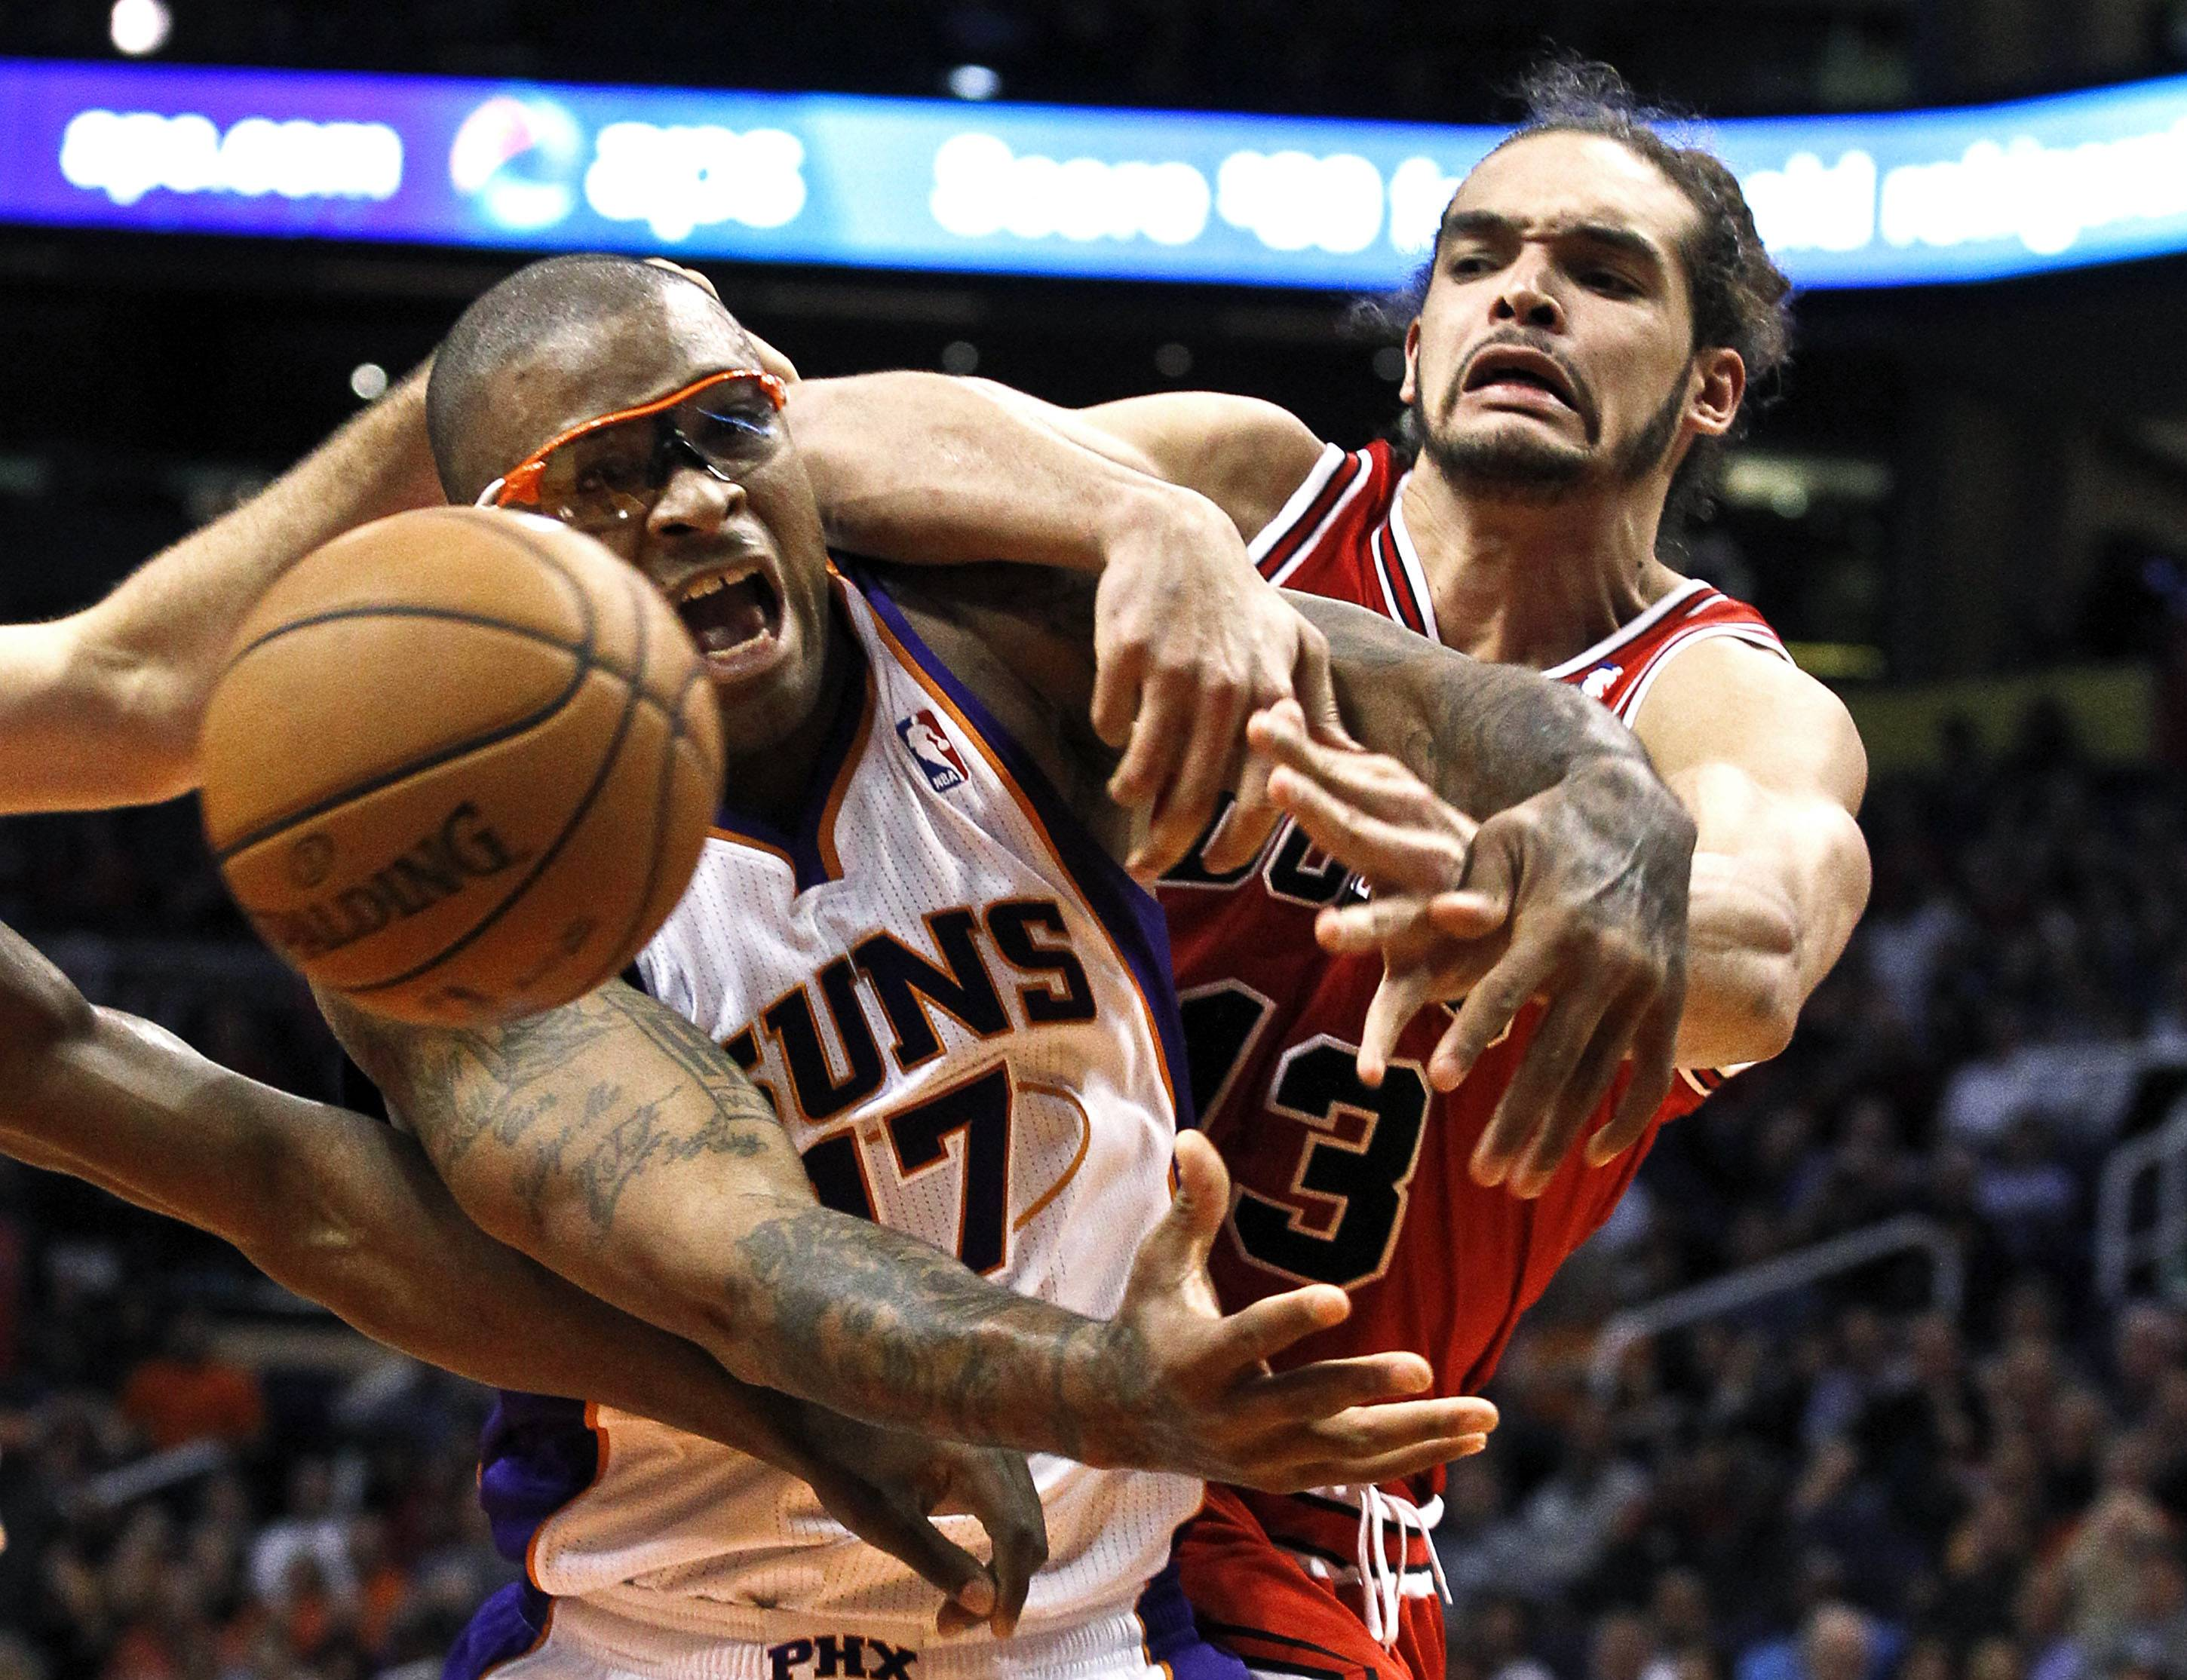 Phoenix Suns' P.J. Tucker (17) battles Chicago Bulls' Joakim Noah, right, for a loose ball during the second half of an NBA basketball game, Wednesday, Nov. 14, 2012, in Phoenix. The Bulls won 112-106.